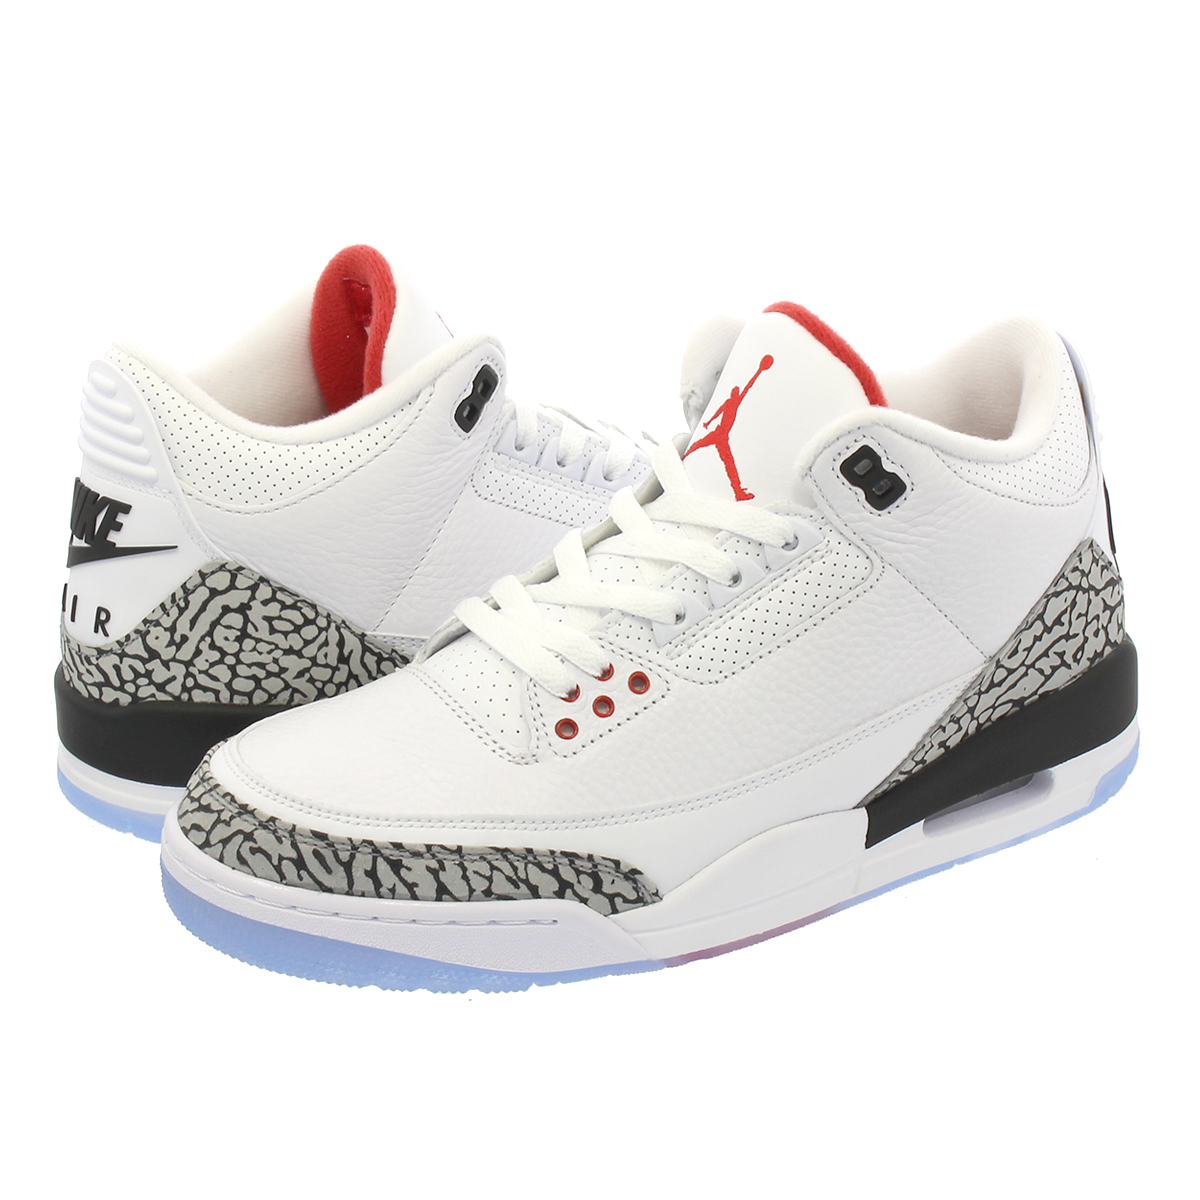 the latest 0b14a aa21f NIKE AIR JORDAN 3 RETRO NRG Nike Air Jordan 3 nostalgic WHITE/FIRE  RED/CEMENT GREY/BLACK